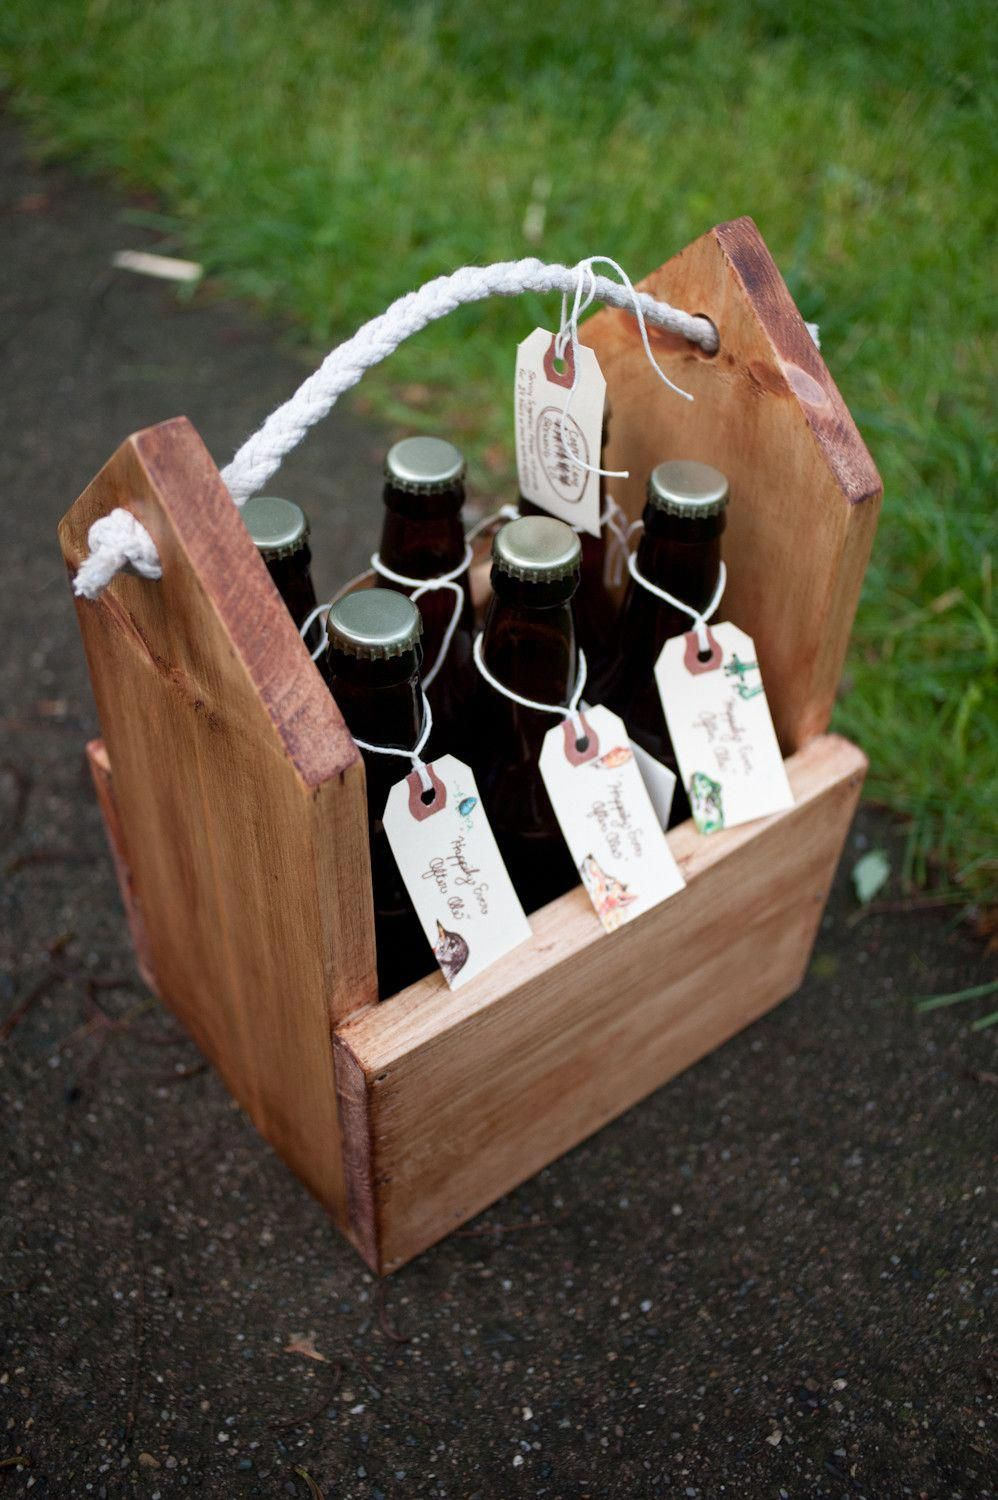 Homebrew as a gift idea reddit awesometreehouse